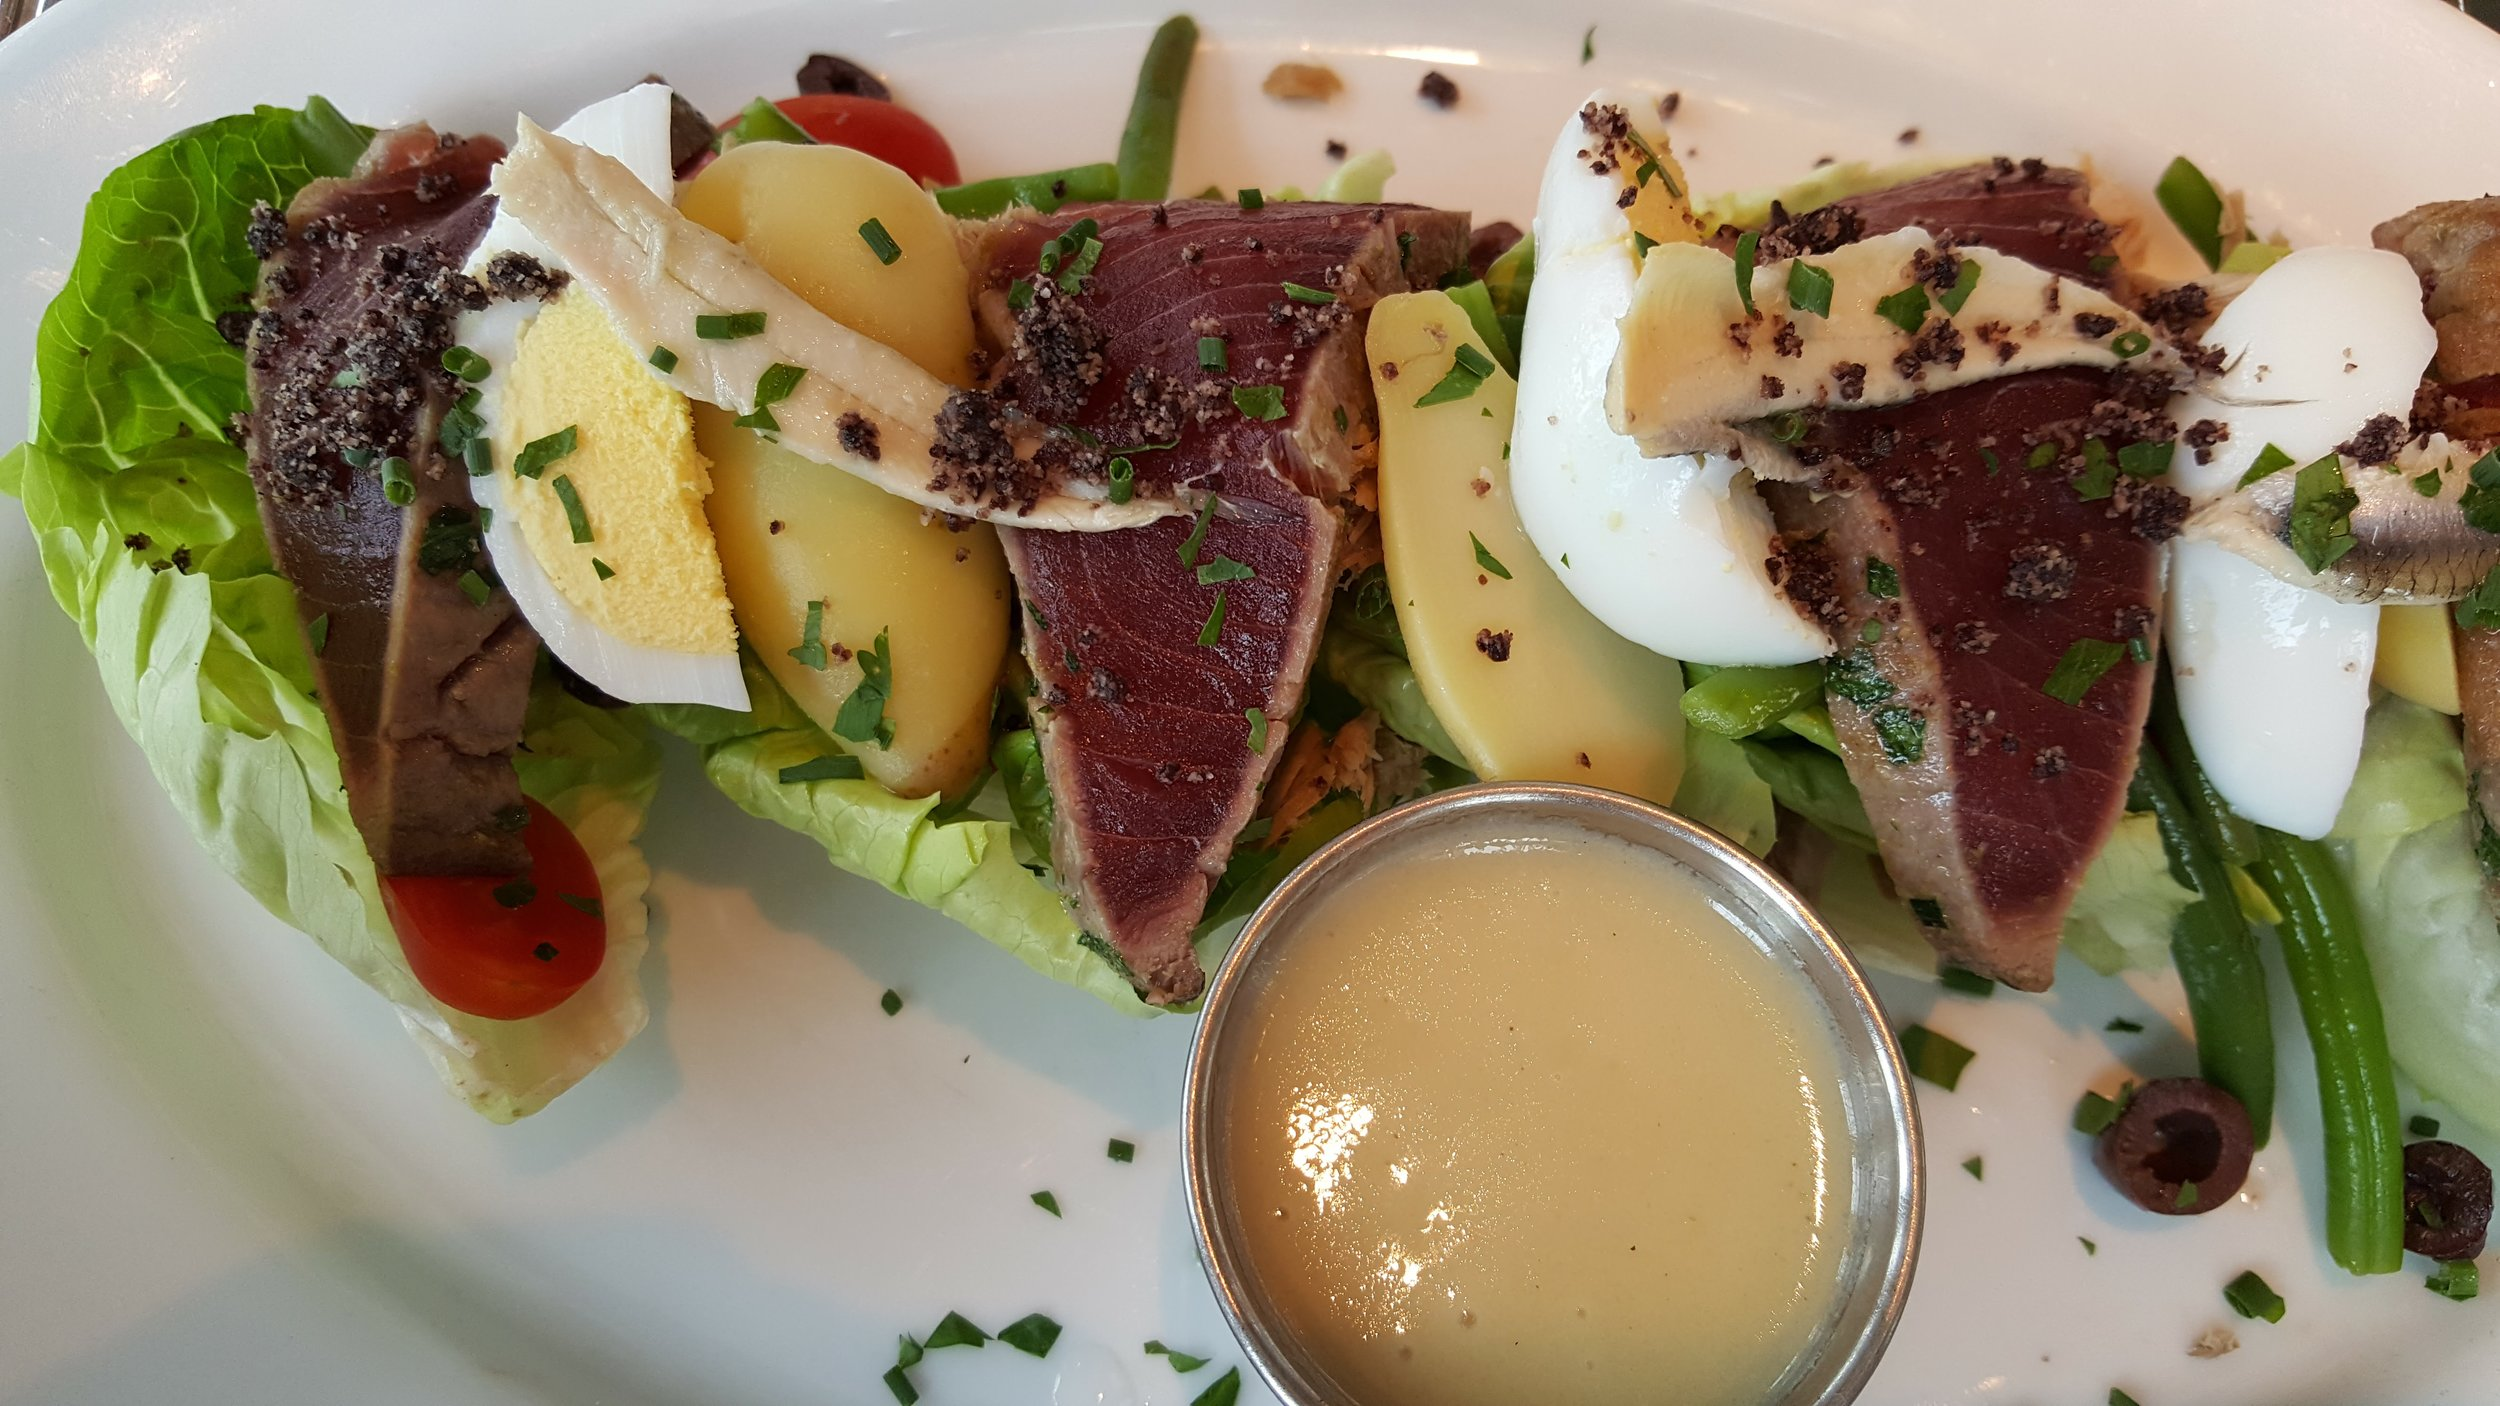 Lunch at the Avenue in Long Branch - My favorite dish - Tuna Nicoise .. I get this every time!